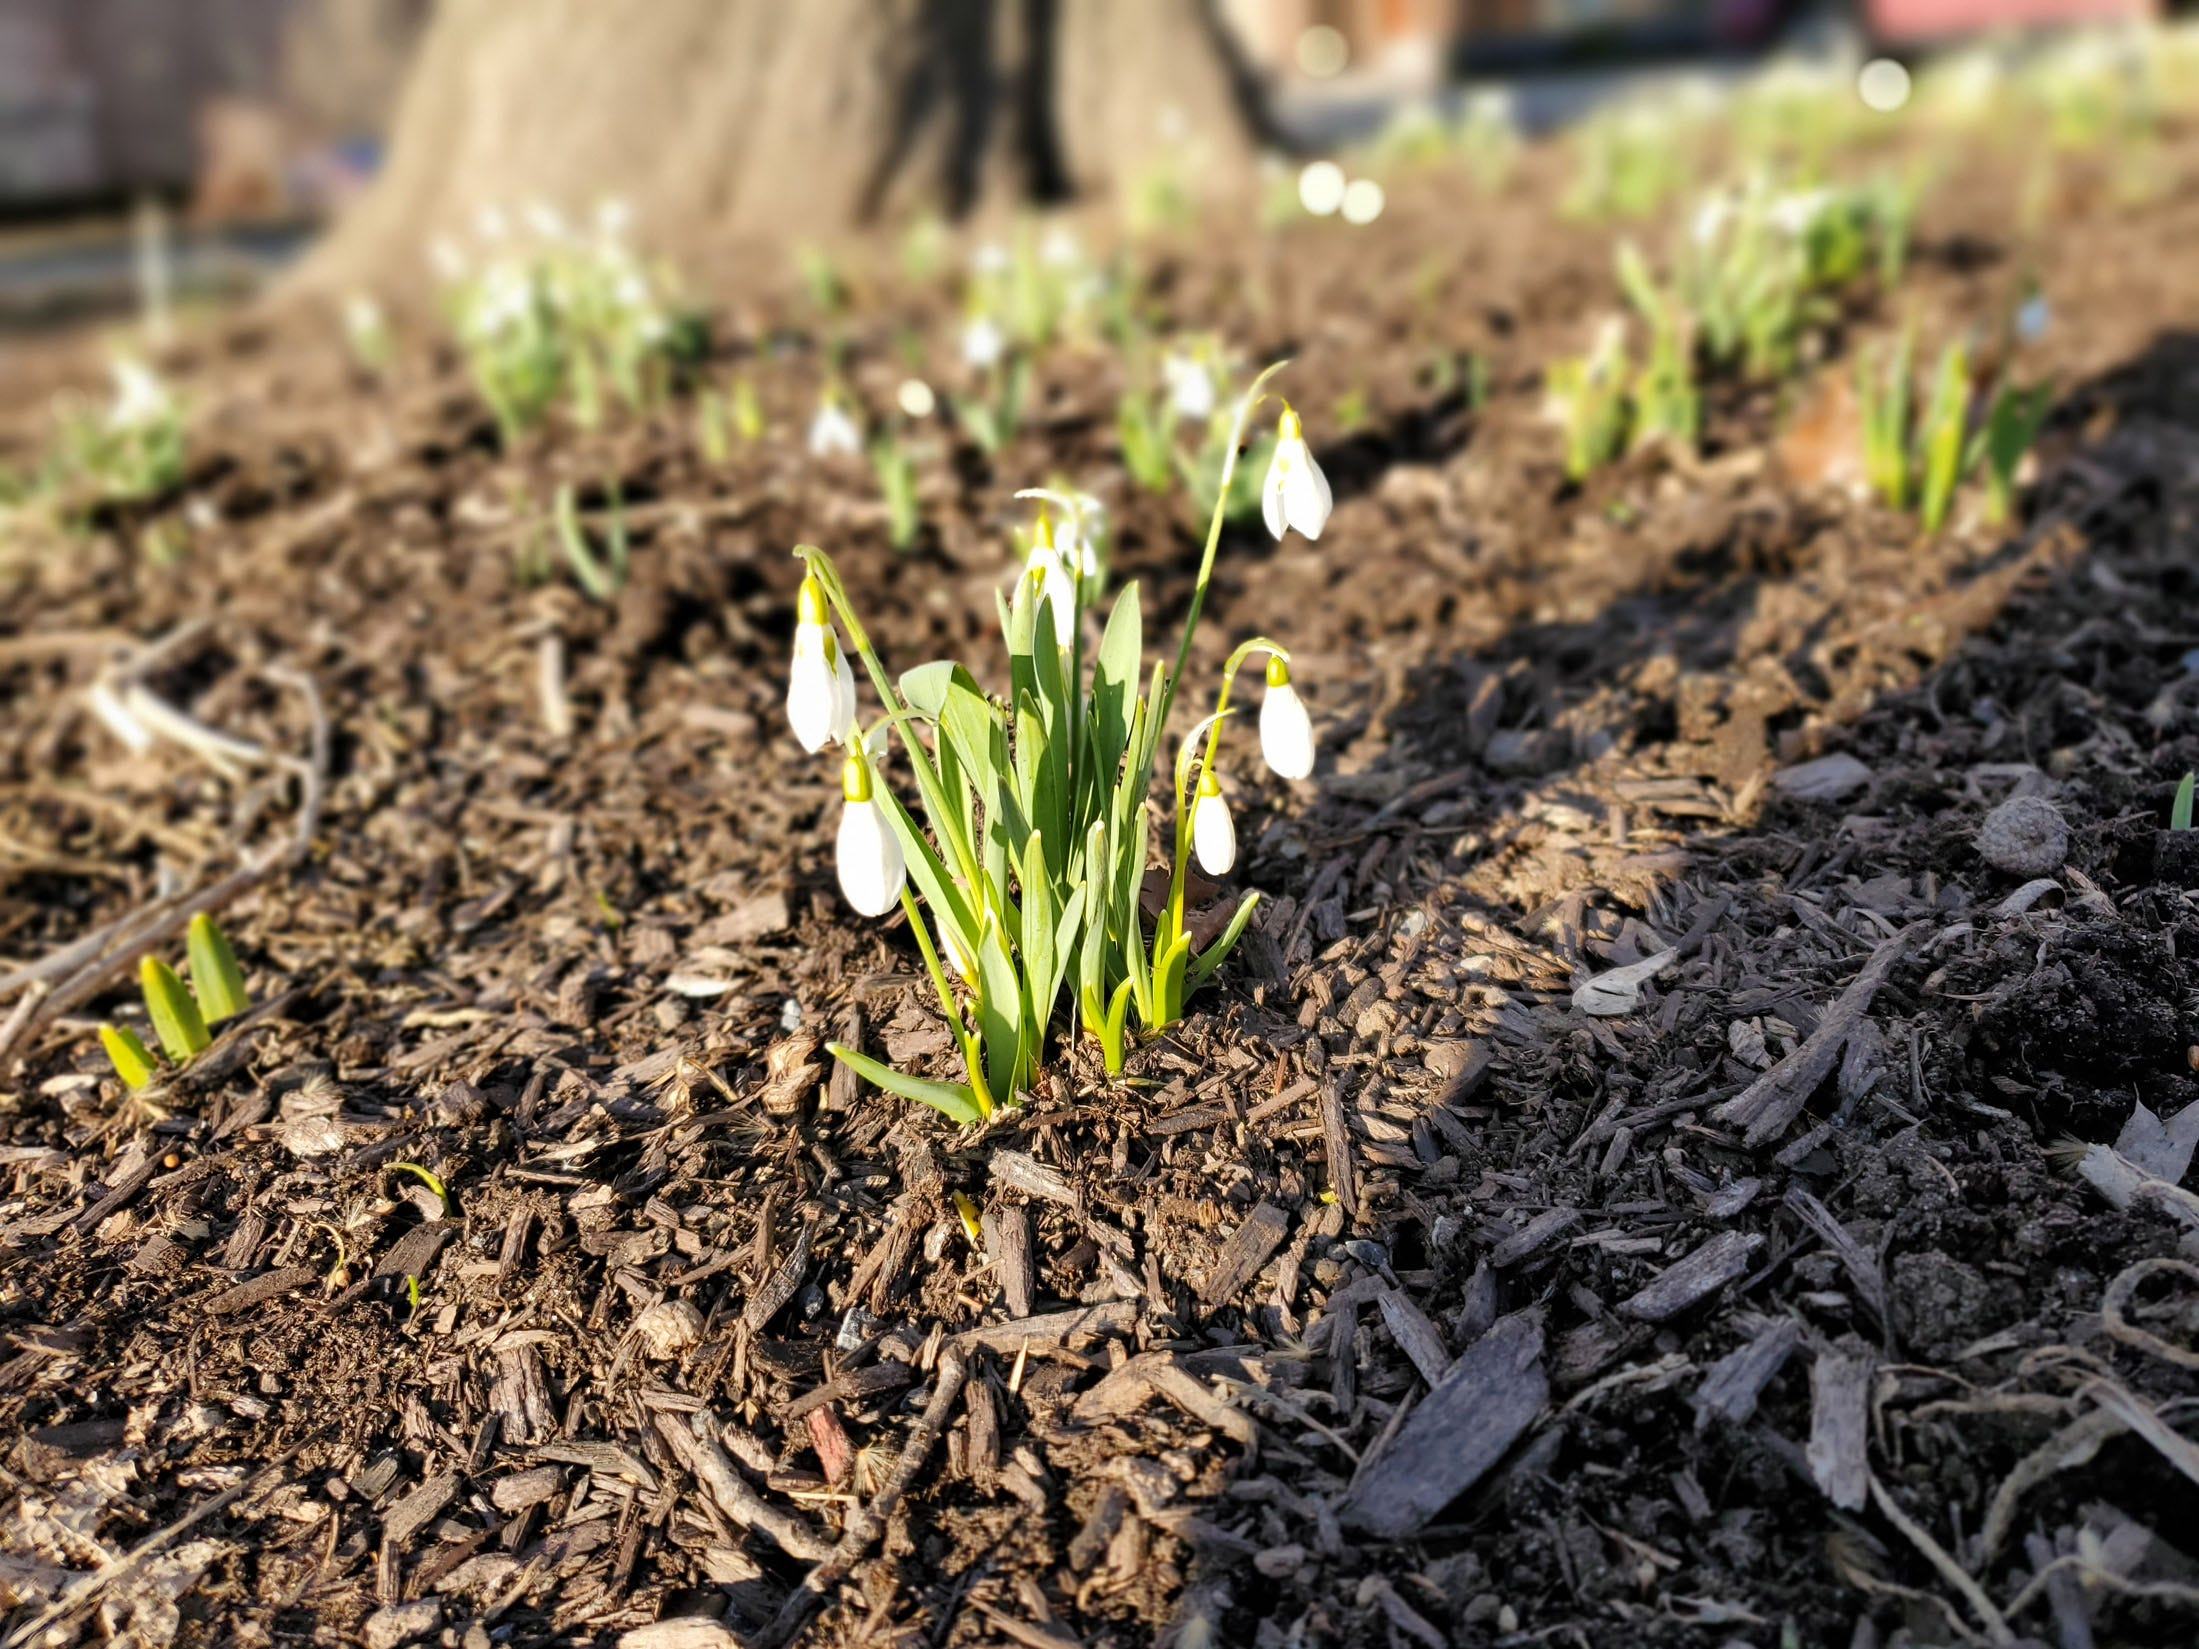 Snowdrops (Galanthus) blooming in the town of Poughkeepsie. Spring is near. @jimberetta2